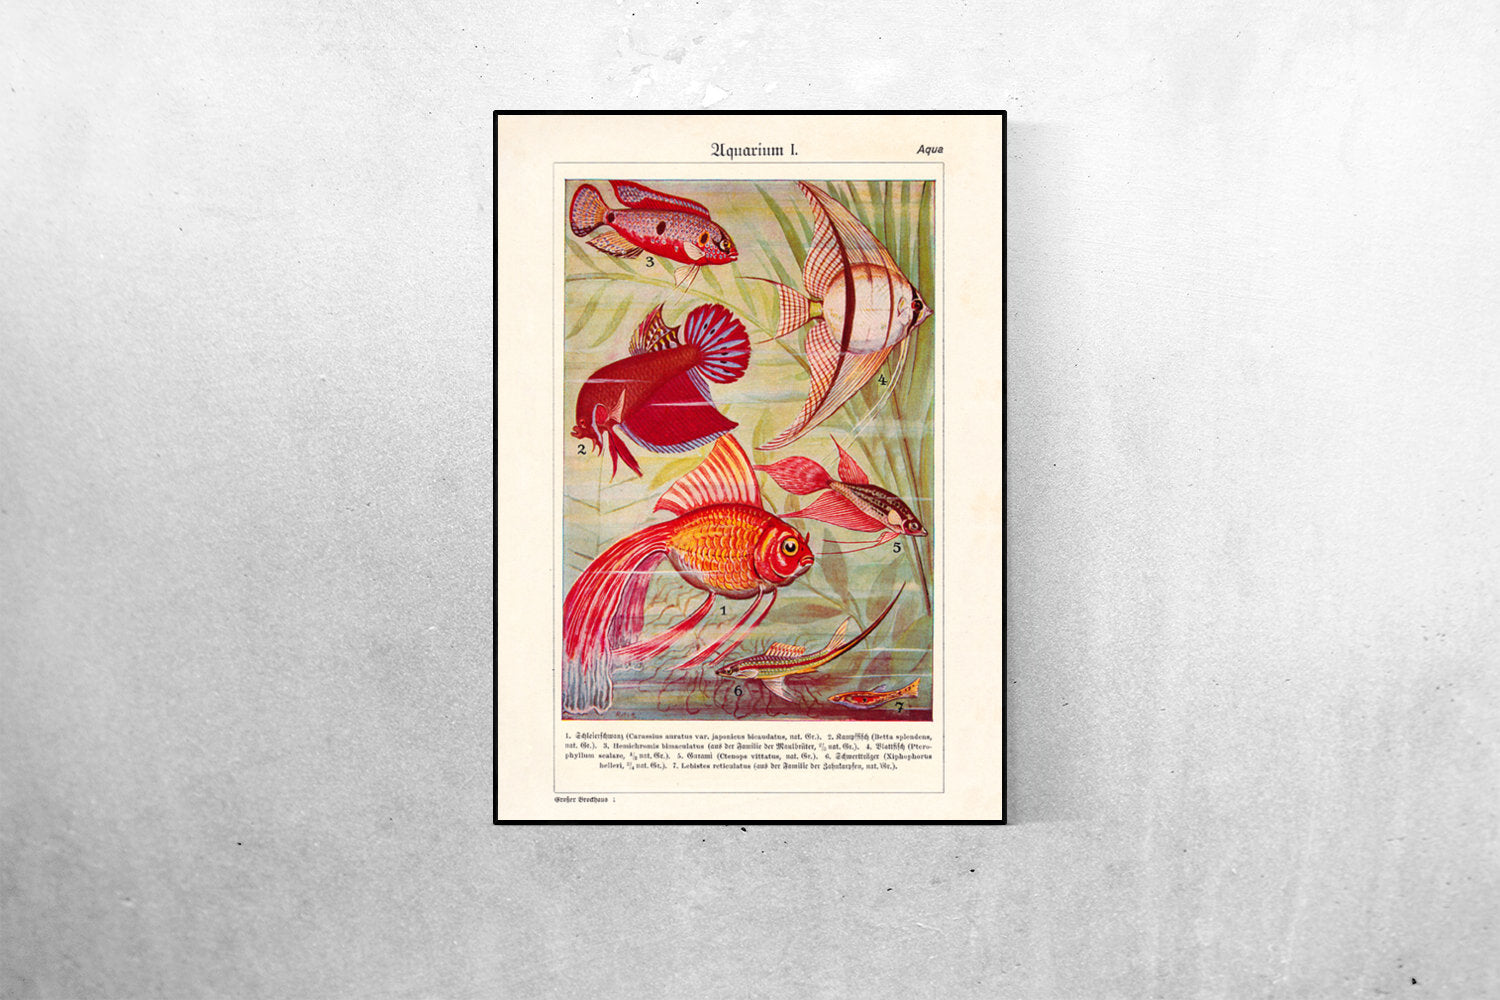 Aquarium Fish - Kuriosis Vintage Prints